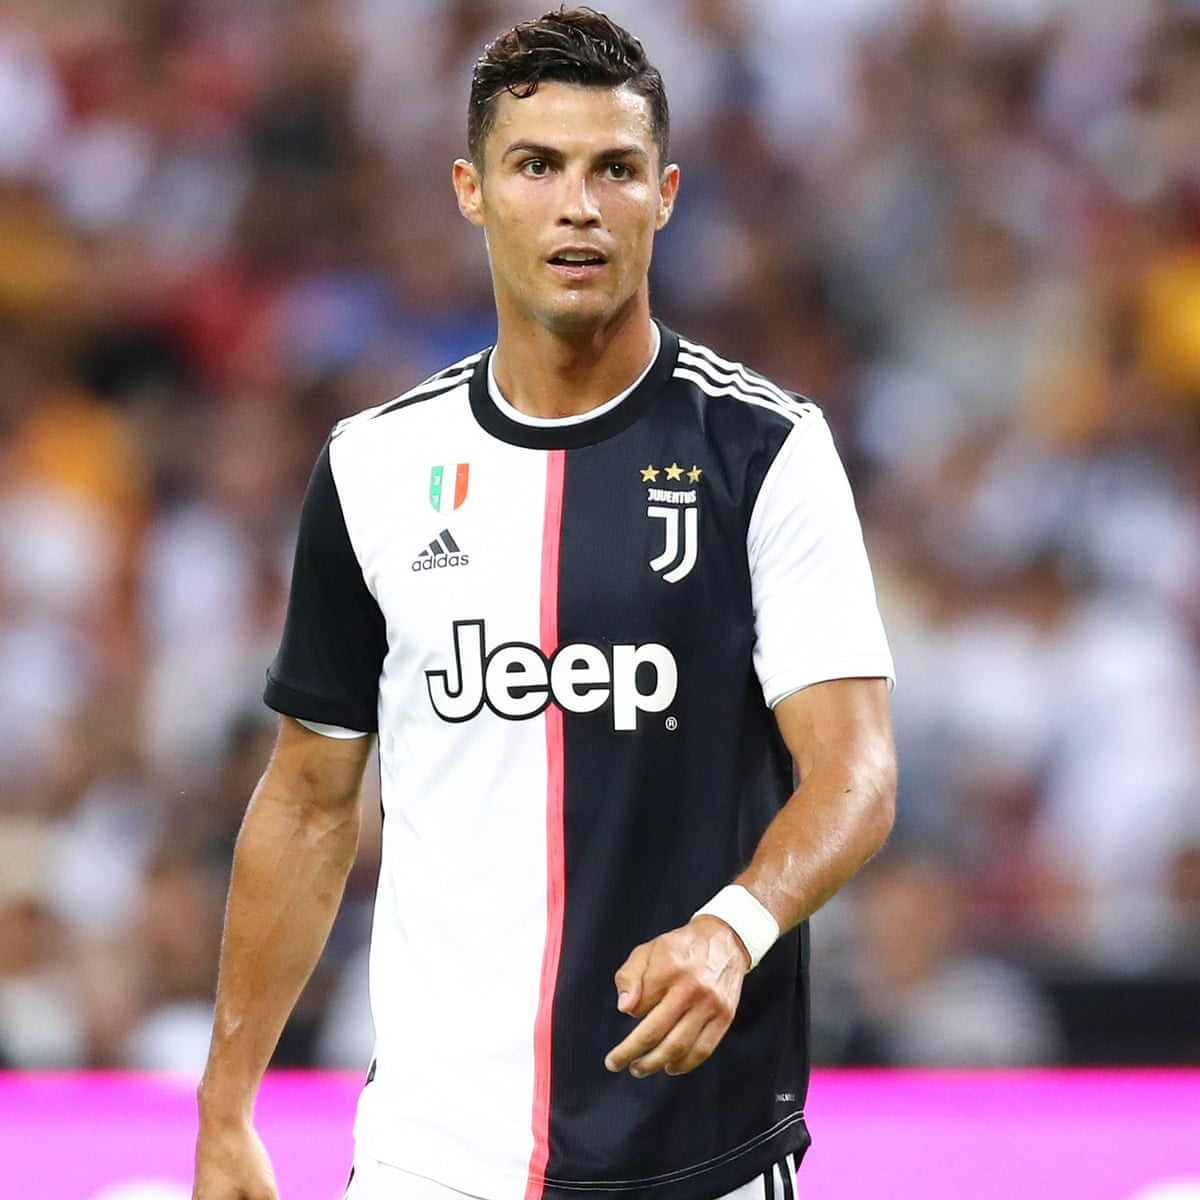 Cristiano Ronaldo Will Not Face Criminal Charges Over Rape Allegations Cristiano Ronaldo The Guardian